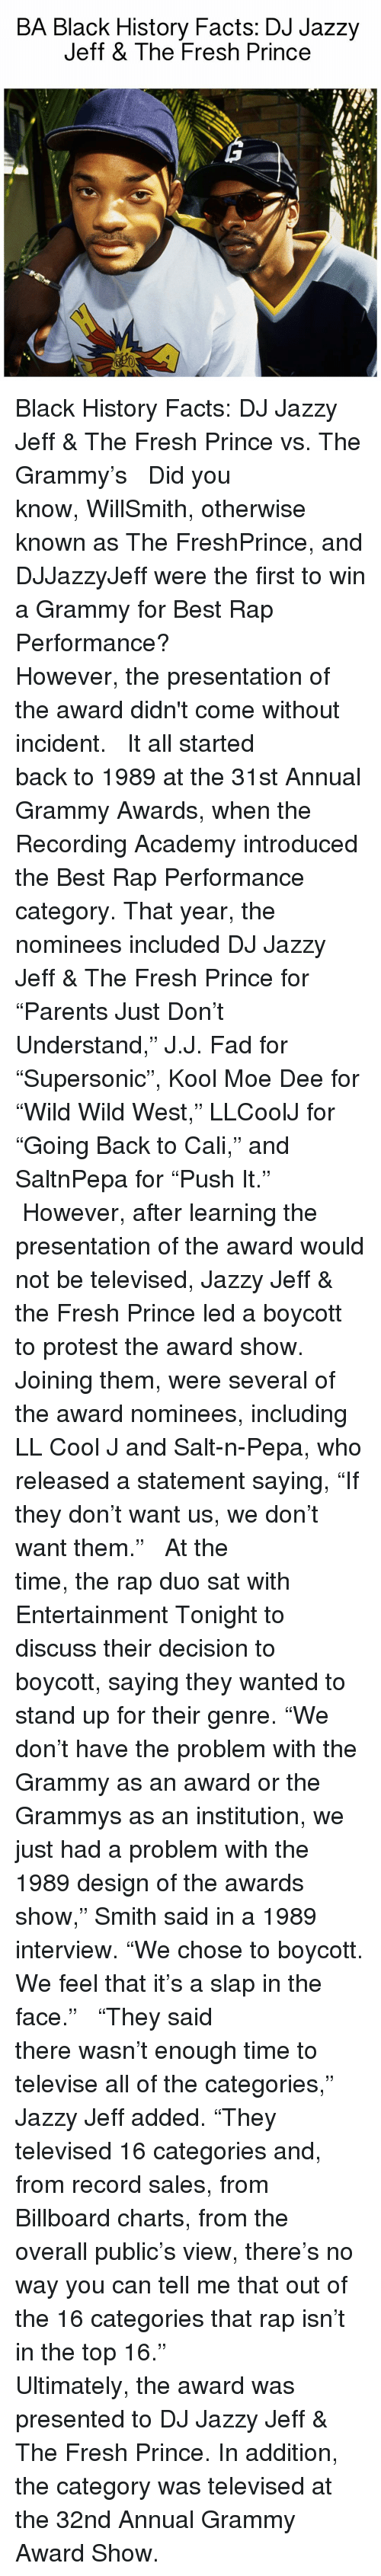 """Grammy Awards: BA Black History Facts: DJ Jazzy  Jeff & The Fresh Prince Black History Facts: DJ Jazzy Jeff & The Fresh Prince vs. The Grammy's ⠀⠀⠀⠀⠀⠀⠀ ⠀⠀⠀⠀⠀⠀⠀ Did you know, WillSmith, otherwise known as The FreshPrince, and DJJazzyJeff were the first to win a Grammy for Best Rap Performance? ⠀⠀⠀⠀⠀⠀⠀ ⠀⠀⠀⠀⠀⠀⠀ However, the presentation of the award didn't come without incident. ⠀⠀⠀⠀⠀⠀⠀ ⠀⠀⠀⠀⠀⠀⠀ It all started back to 1989 at the 31st Annual Grammy Awards, when the Recording Academy introduced the Best Rap Performance category. That year, the nominees included DJ Jazzy Jeff & The Fresh Prince for """"Parents Just Don't Understand,"""" J.J. Fad for """"Supersonic"""", Kool Moe Dee for """"Wild Wild West,"""" LLCoolJ for """"Going Back to Cali,"""" and SaltnPepa for """"Push It."""" ⠀⠀⠀⠀⠀⠀⠀ ⠀⠀⠀⠀⠀⠀⠀ However, after learning the presentation of the award would not be televised, Jazzy Jeff & the Fresh Prince led a boycott to protest the award show. Joining them, were several of the award nominees, including LL Cool J and Salt-n-Pepa, who released a statement saying, """"If they don't want us, we don't want them."""" ⠀⠀⠀⠀⠀⠀⠀ ⠀⠀⠀⠀⠀⠀⠀ At the time, the rap duo sat with Entertainment Tonight to discuss their decision to boycott, saying they wanted to stand up for their genre. """"We don't have the problem with the Grammy as an award or the Grammys as an institution, we just had a problem with the 1989 design of the awards show,"""" Smith said in a 1989 interview. """"We chose to boycott. We feel that it's a slap in the face."""" ⠀⠀⠀⠀⠀⠀⠀ ⠀⠀⠀⠀⠀⠀⠀ """"They said there wasn't enough time to televise all of the categories,"""" Jazzy Jeff added. """"They televised 16 categories and, from record sales, from Billboard charts, from the overall public's view, there's no way you can tell me that out of the 16 categories that rap isn't in the top 16."""" ⠀⠀⠀⠀⠀⠀⠀ ⠀⠀⠀⠀⠀⠀⠀ Ultimately, the award was presented to DJ Jazzy Jeff & The Fresh Prince. In addition, the category was televised at the 32nd Annual Grammy Award Show."""